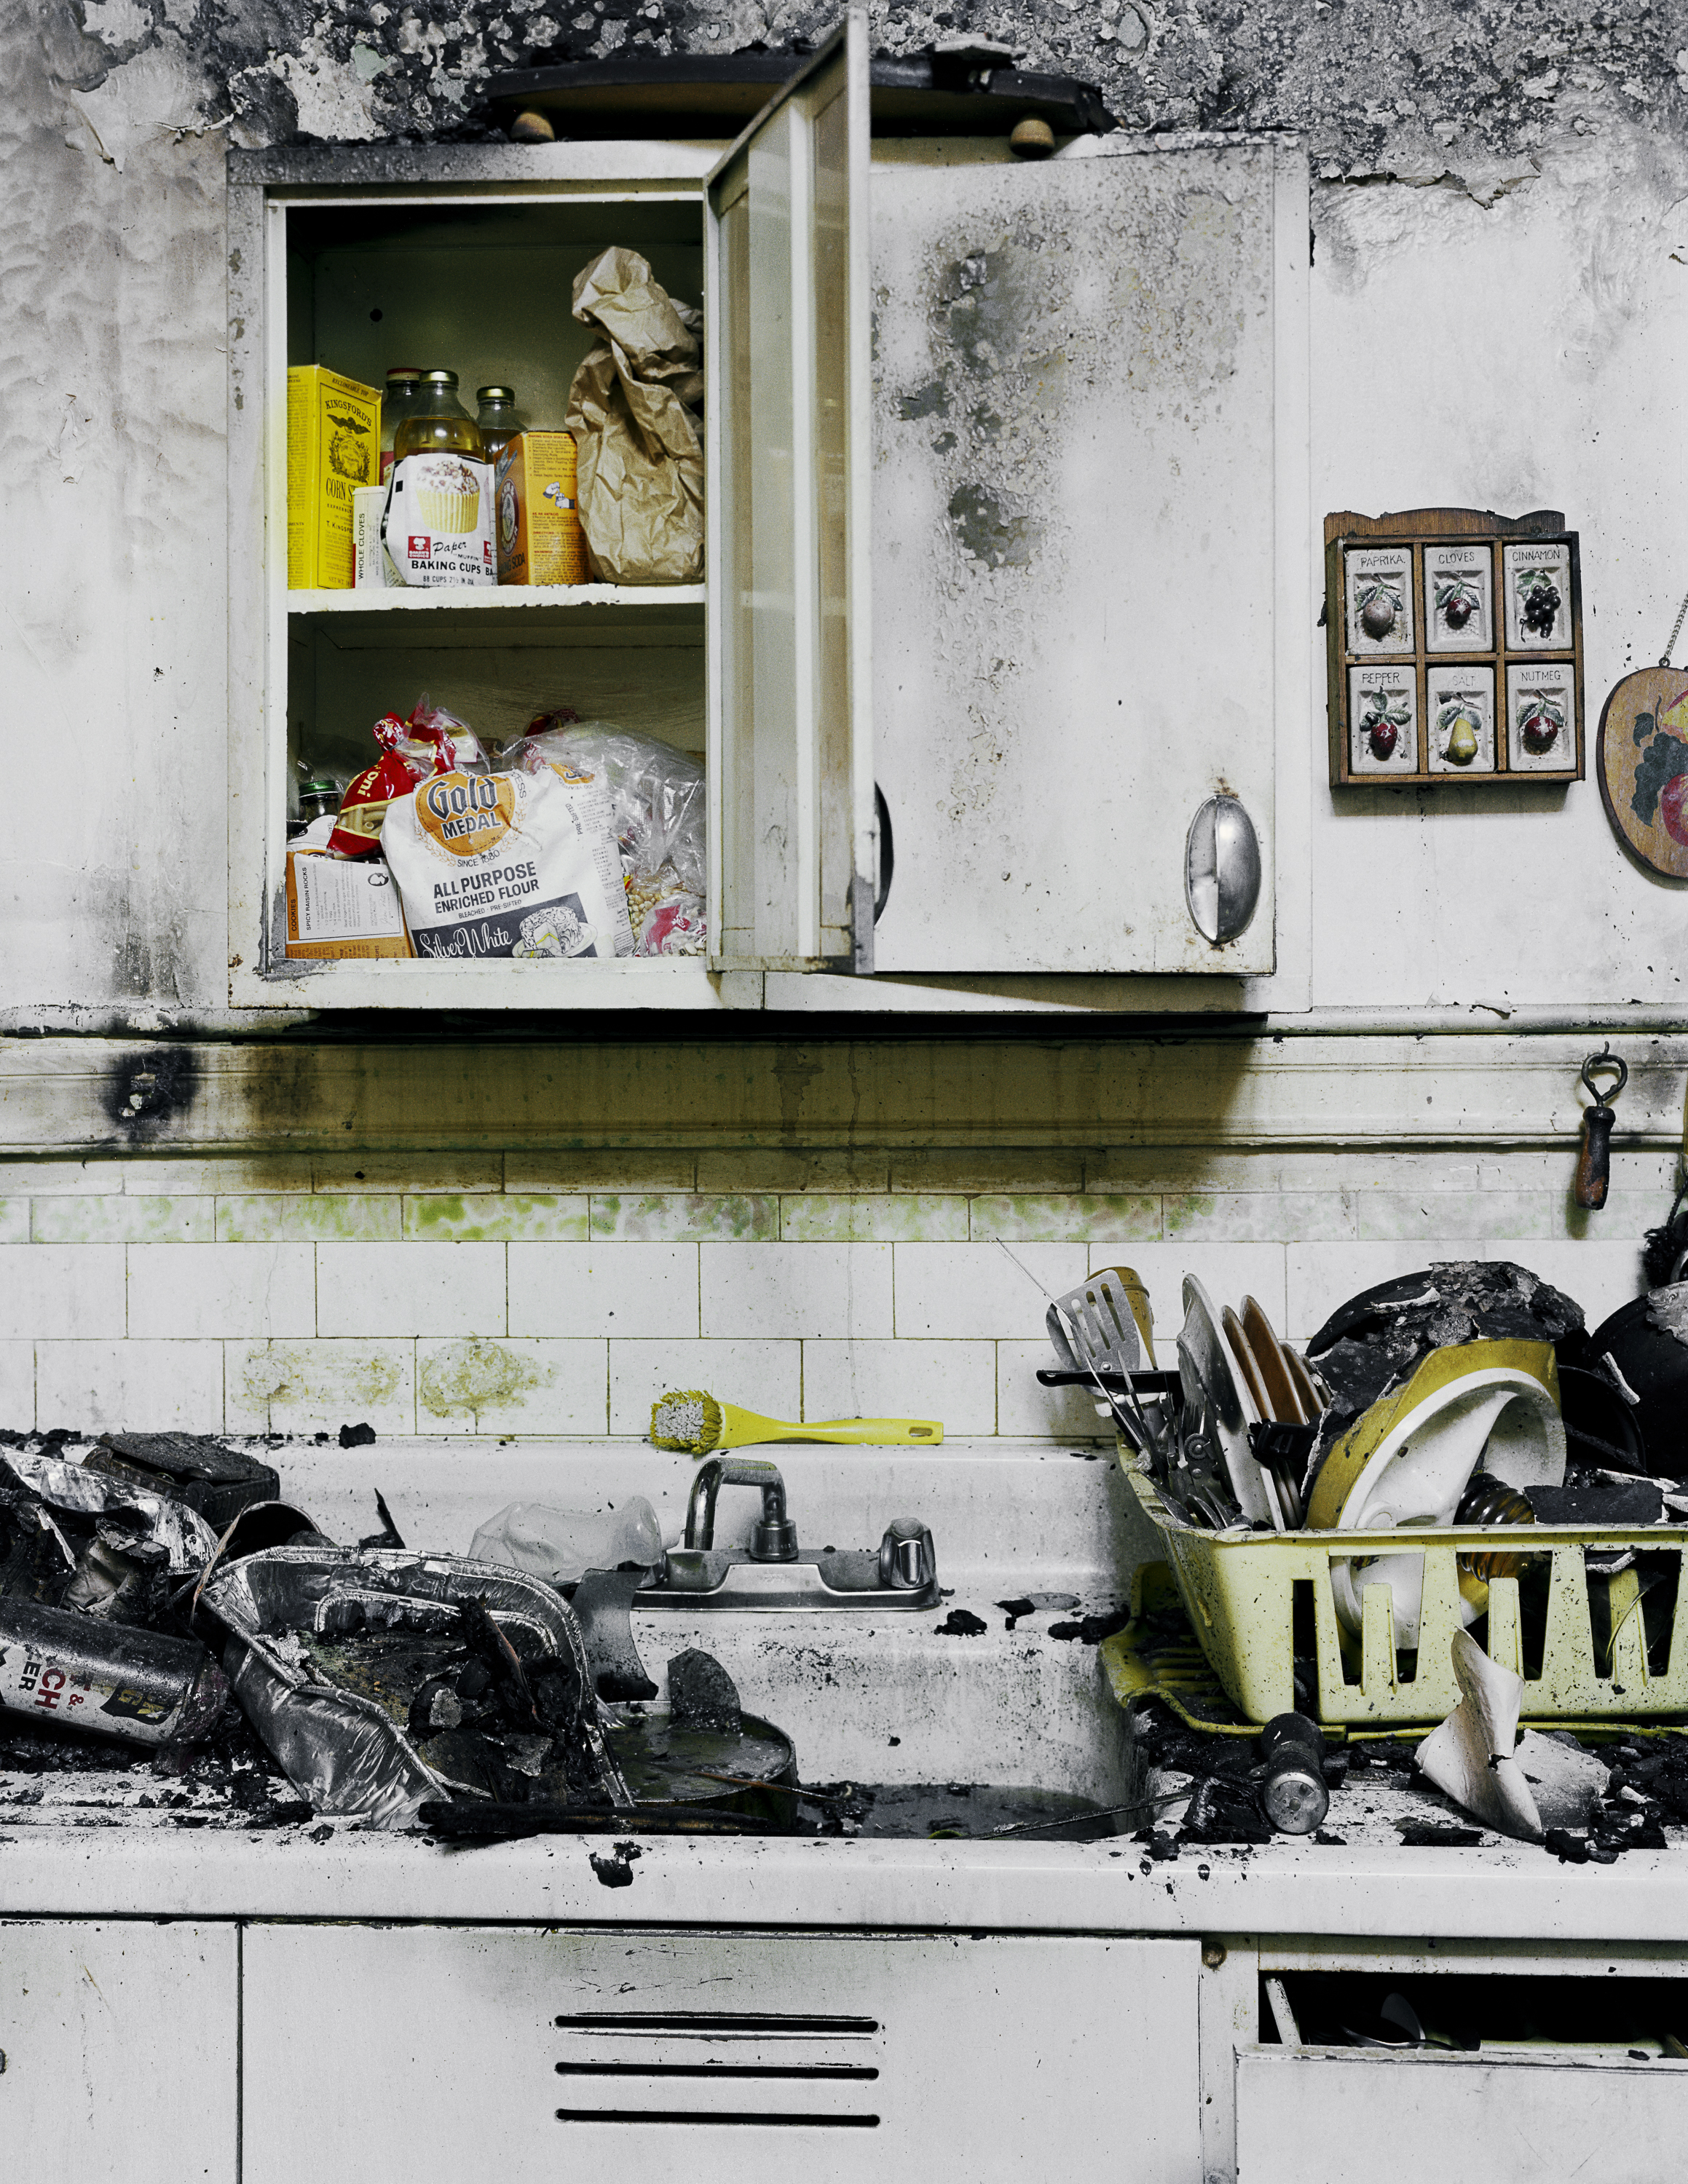 Mary Gardner's Kitchen after the five-alarm fire, Folsom Street, 1981 Archival Pigment Print, 2016 16 x 20 inches, edition of 5 20 x 24 inches, edition of 2 30 x 40 inches, edition of 2